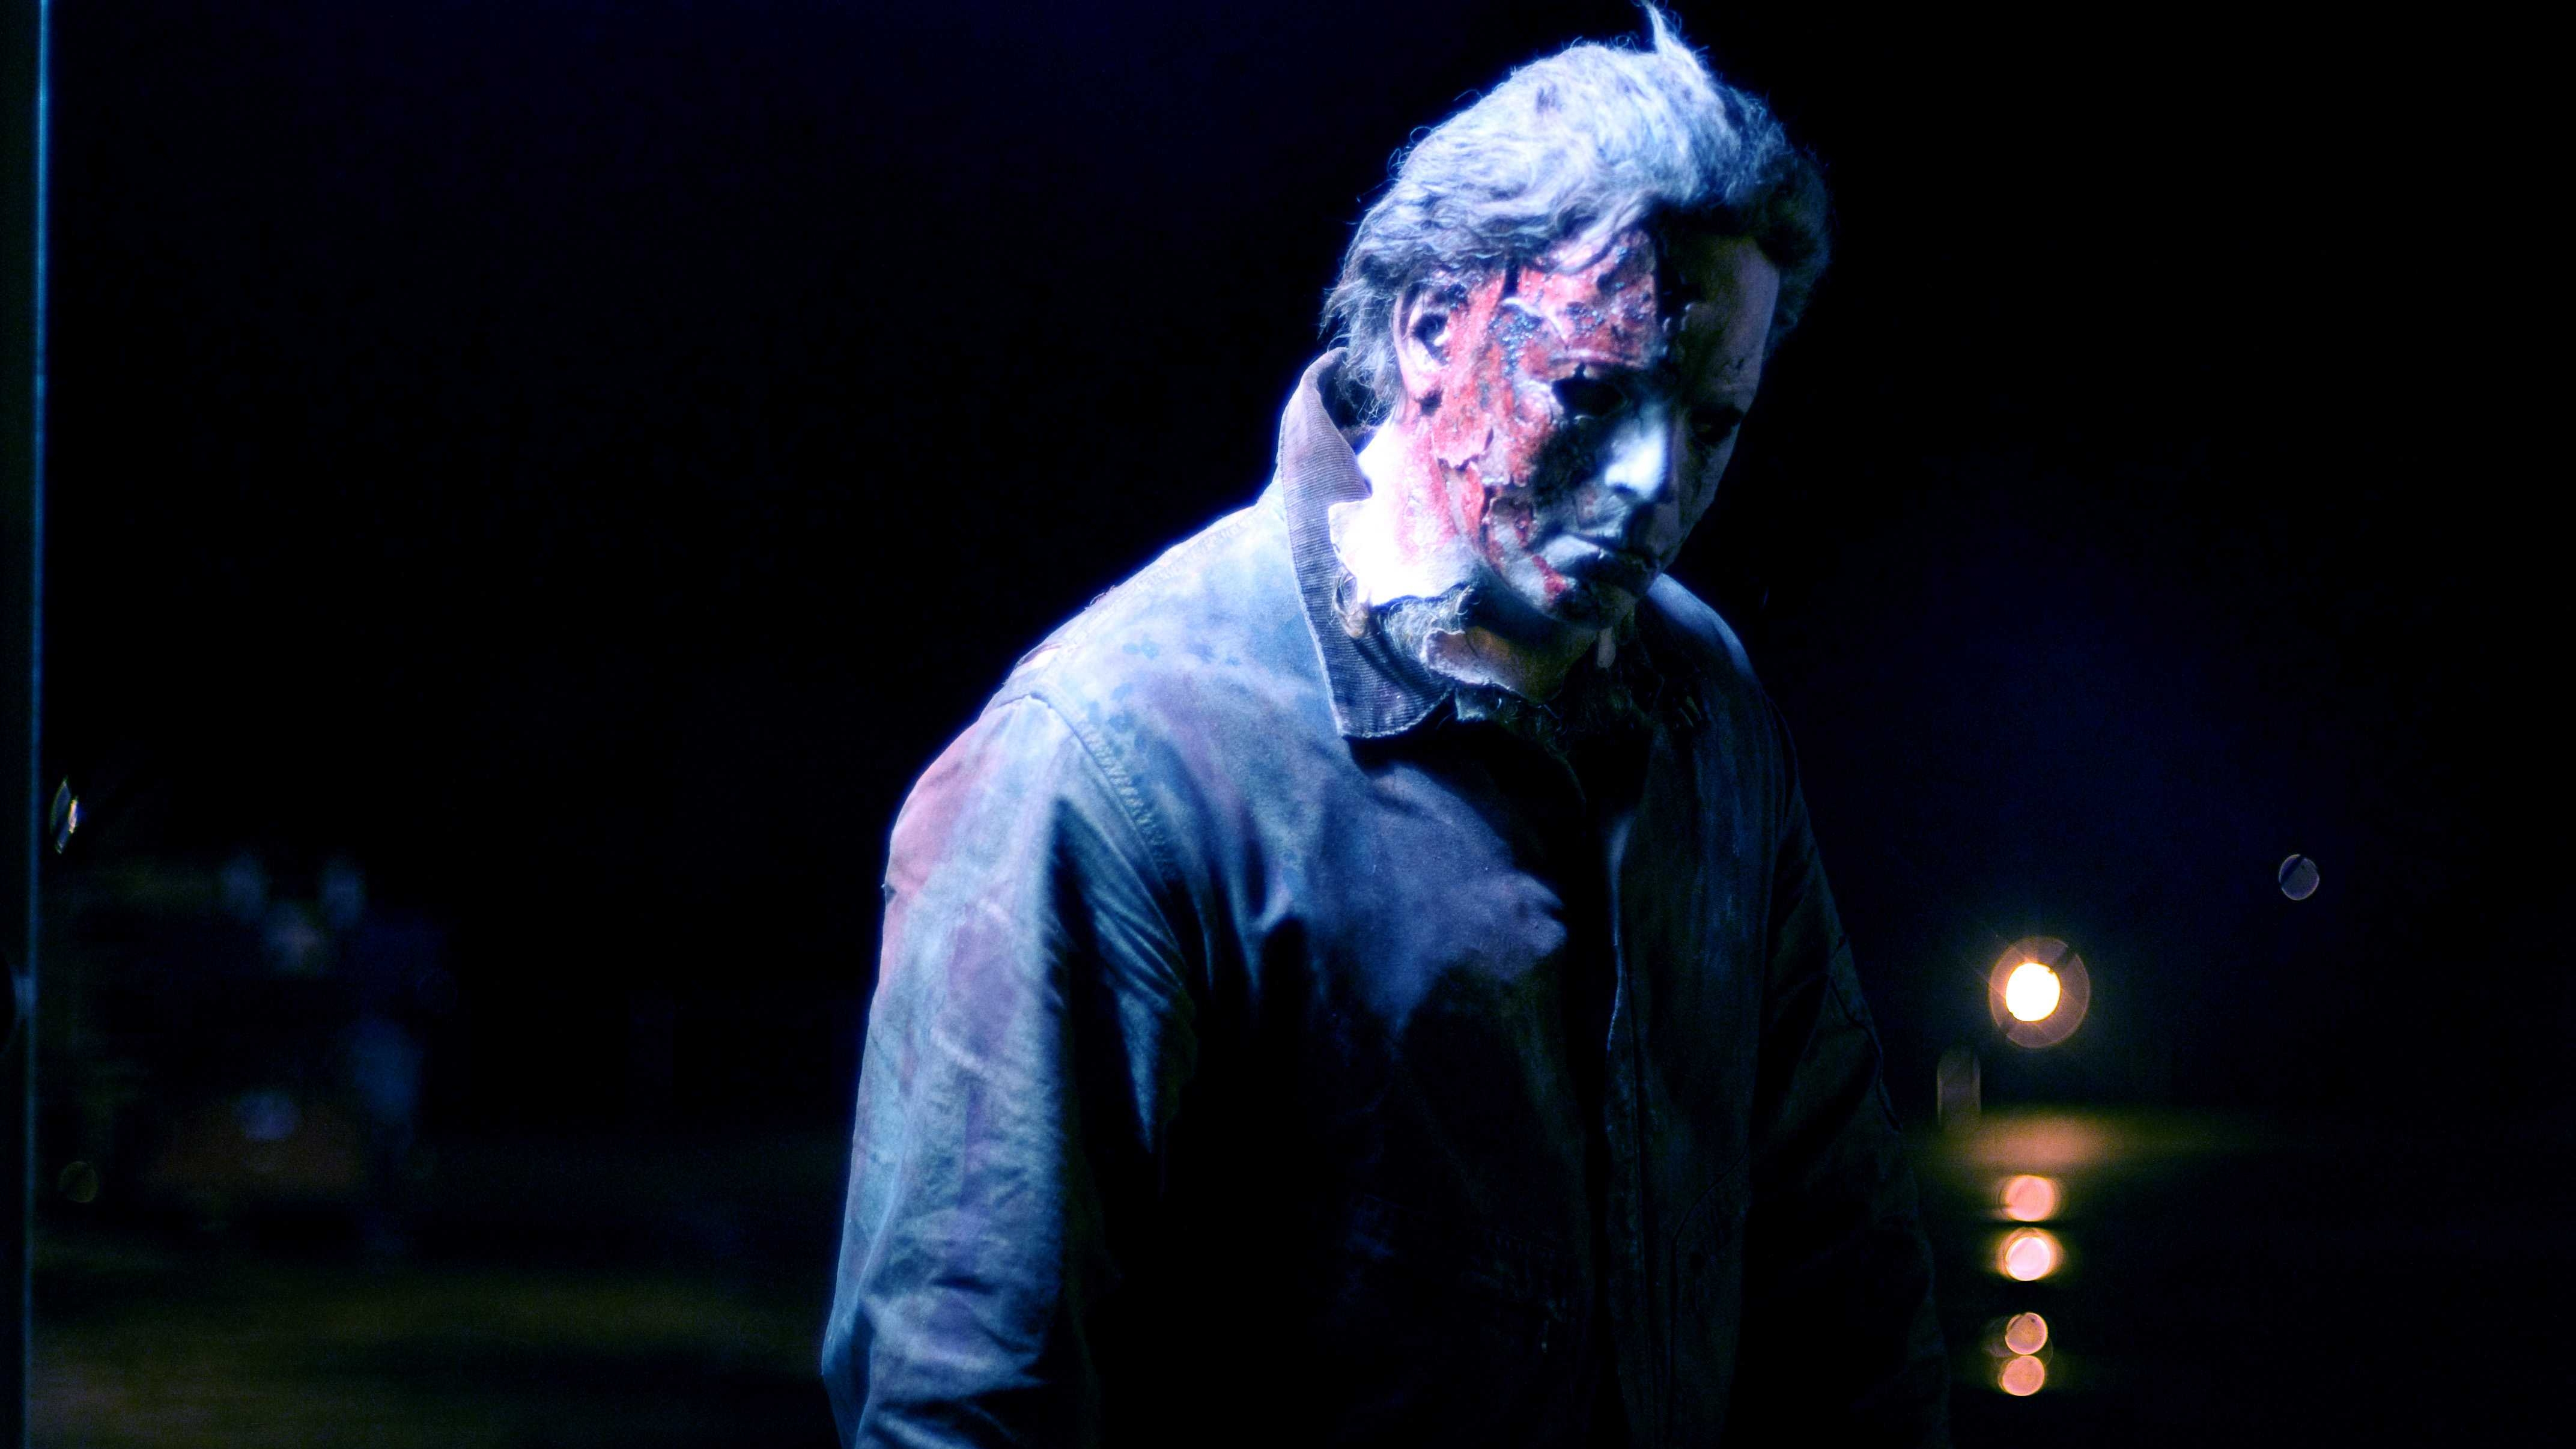 Halloween-Michael-Myers-Wallpaper-11